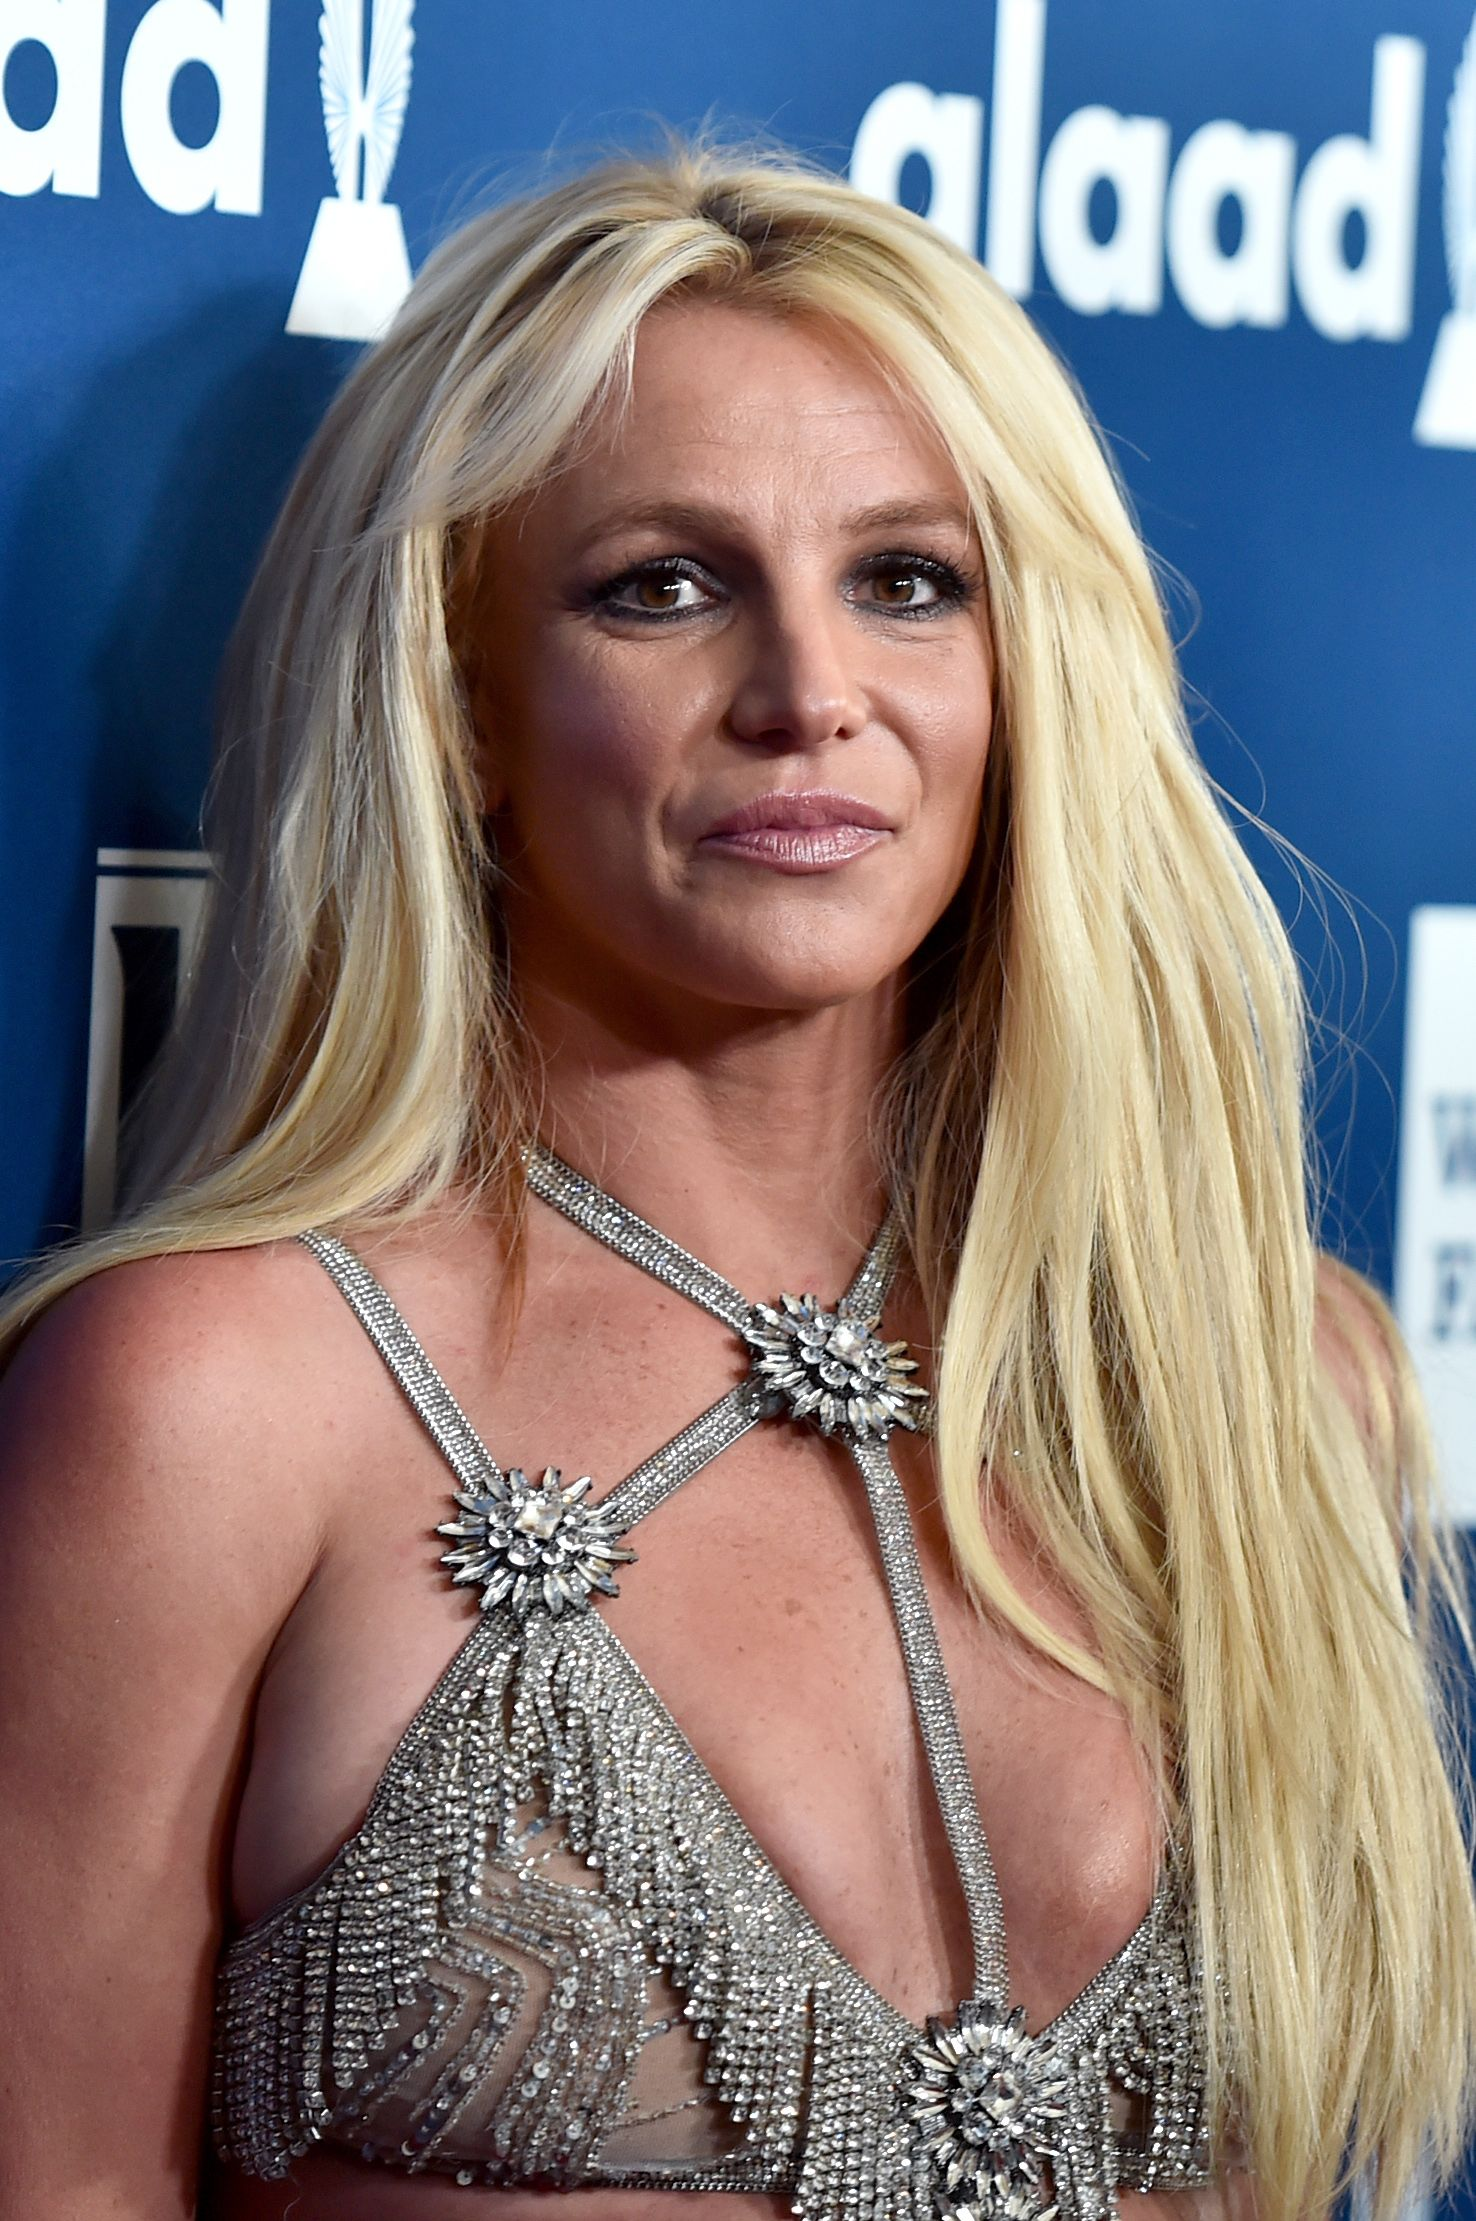 Britney Spears at the 29th Annual GLAAD Media Awards at The Beverly Hilton Hotel in Beverly Hills, California | Photo: Alberto E. Rodriguez/Getty Images